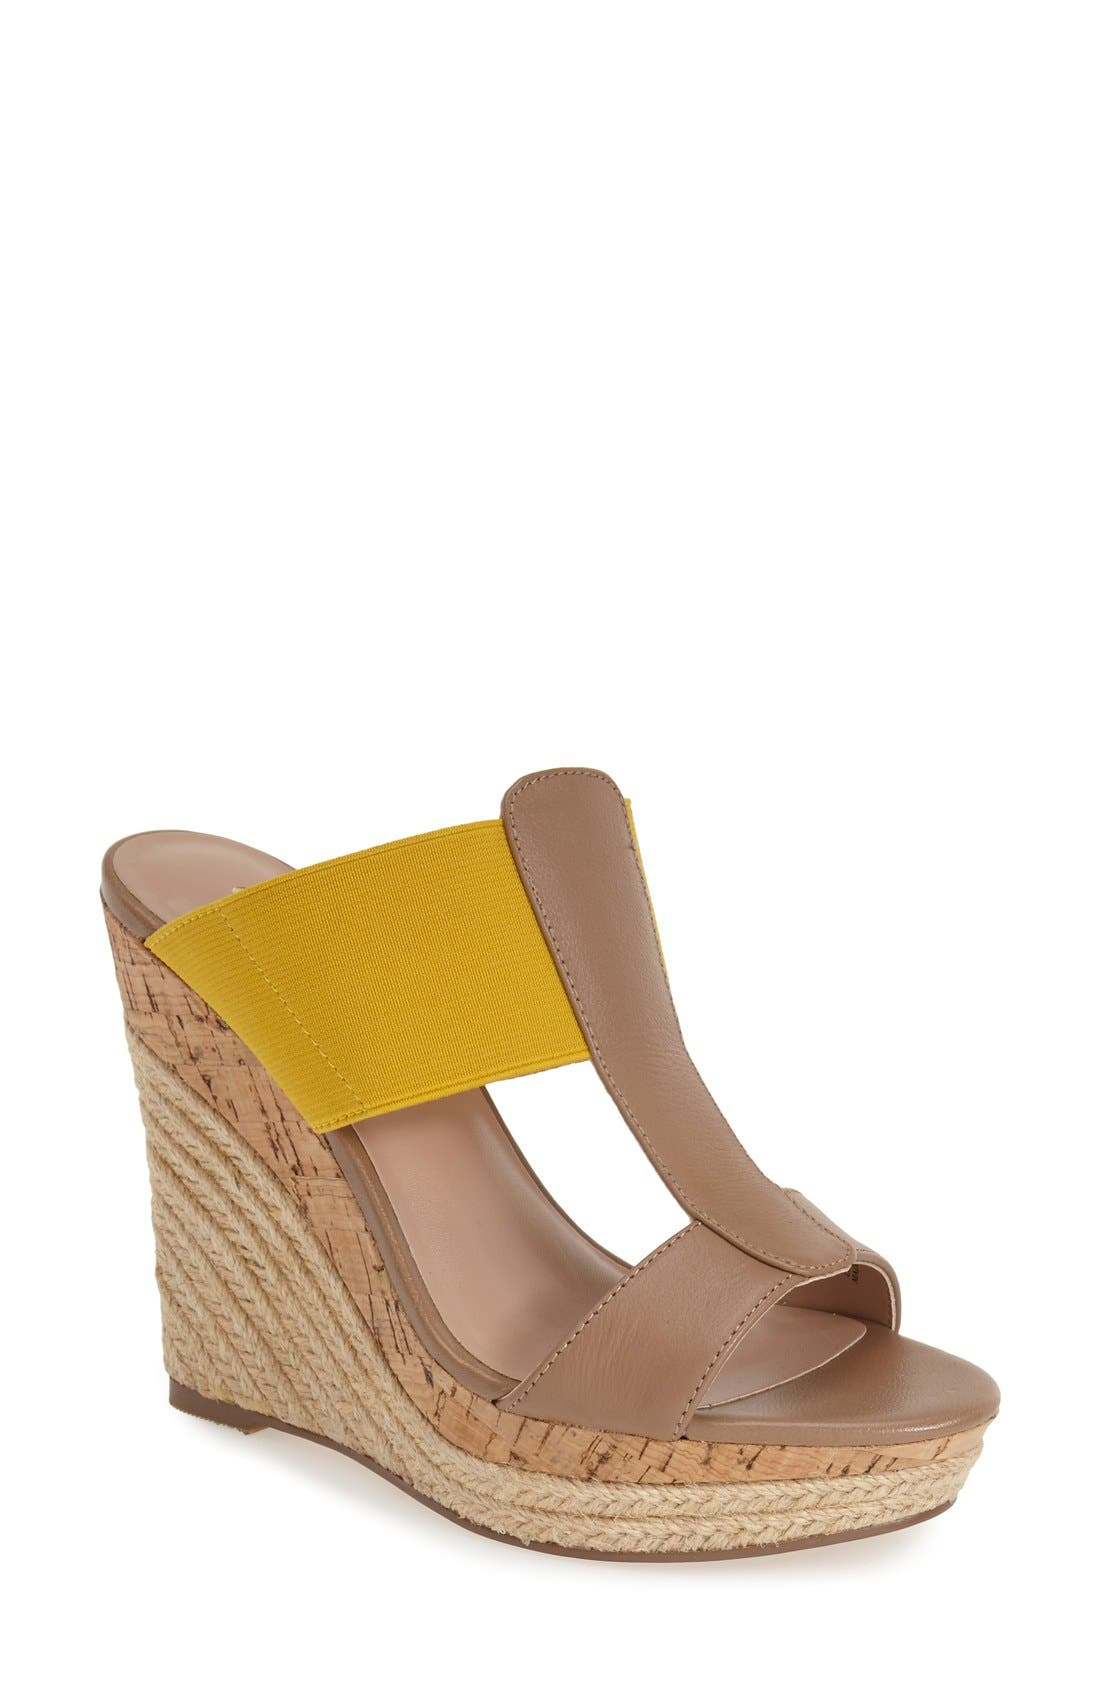 Alternate Image 1 Selected - Charles by Charles David 'Alto' Espadrille Wedge Sandal (Women)